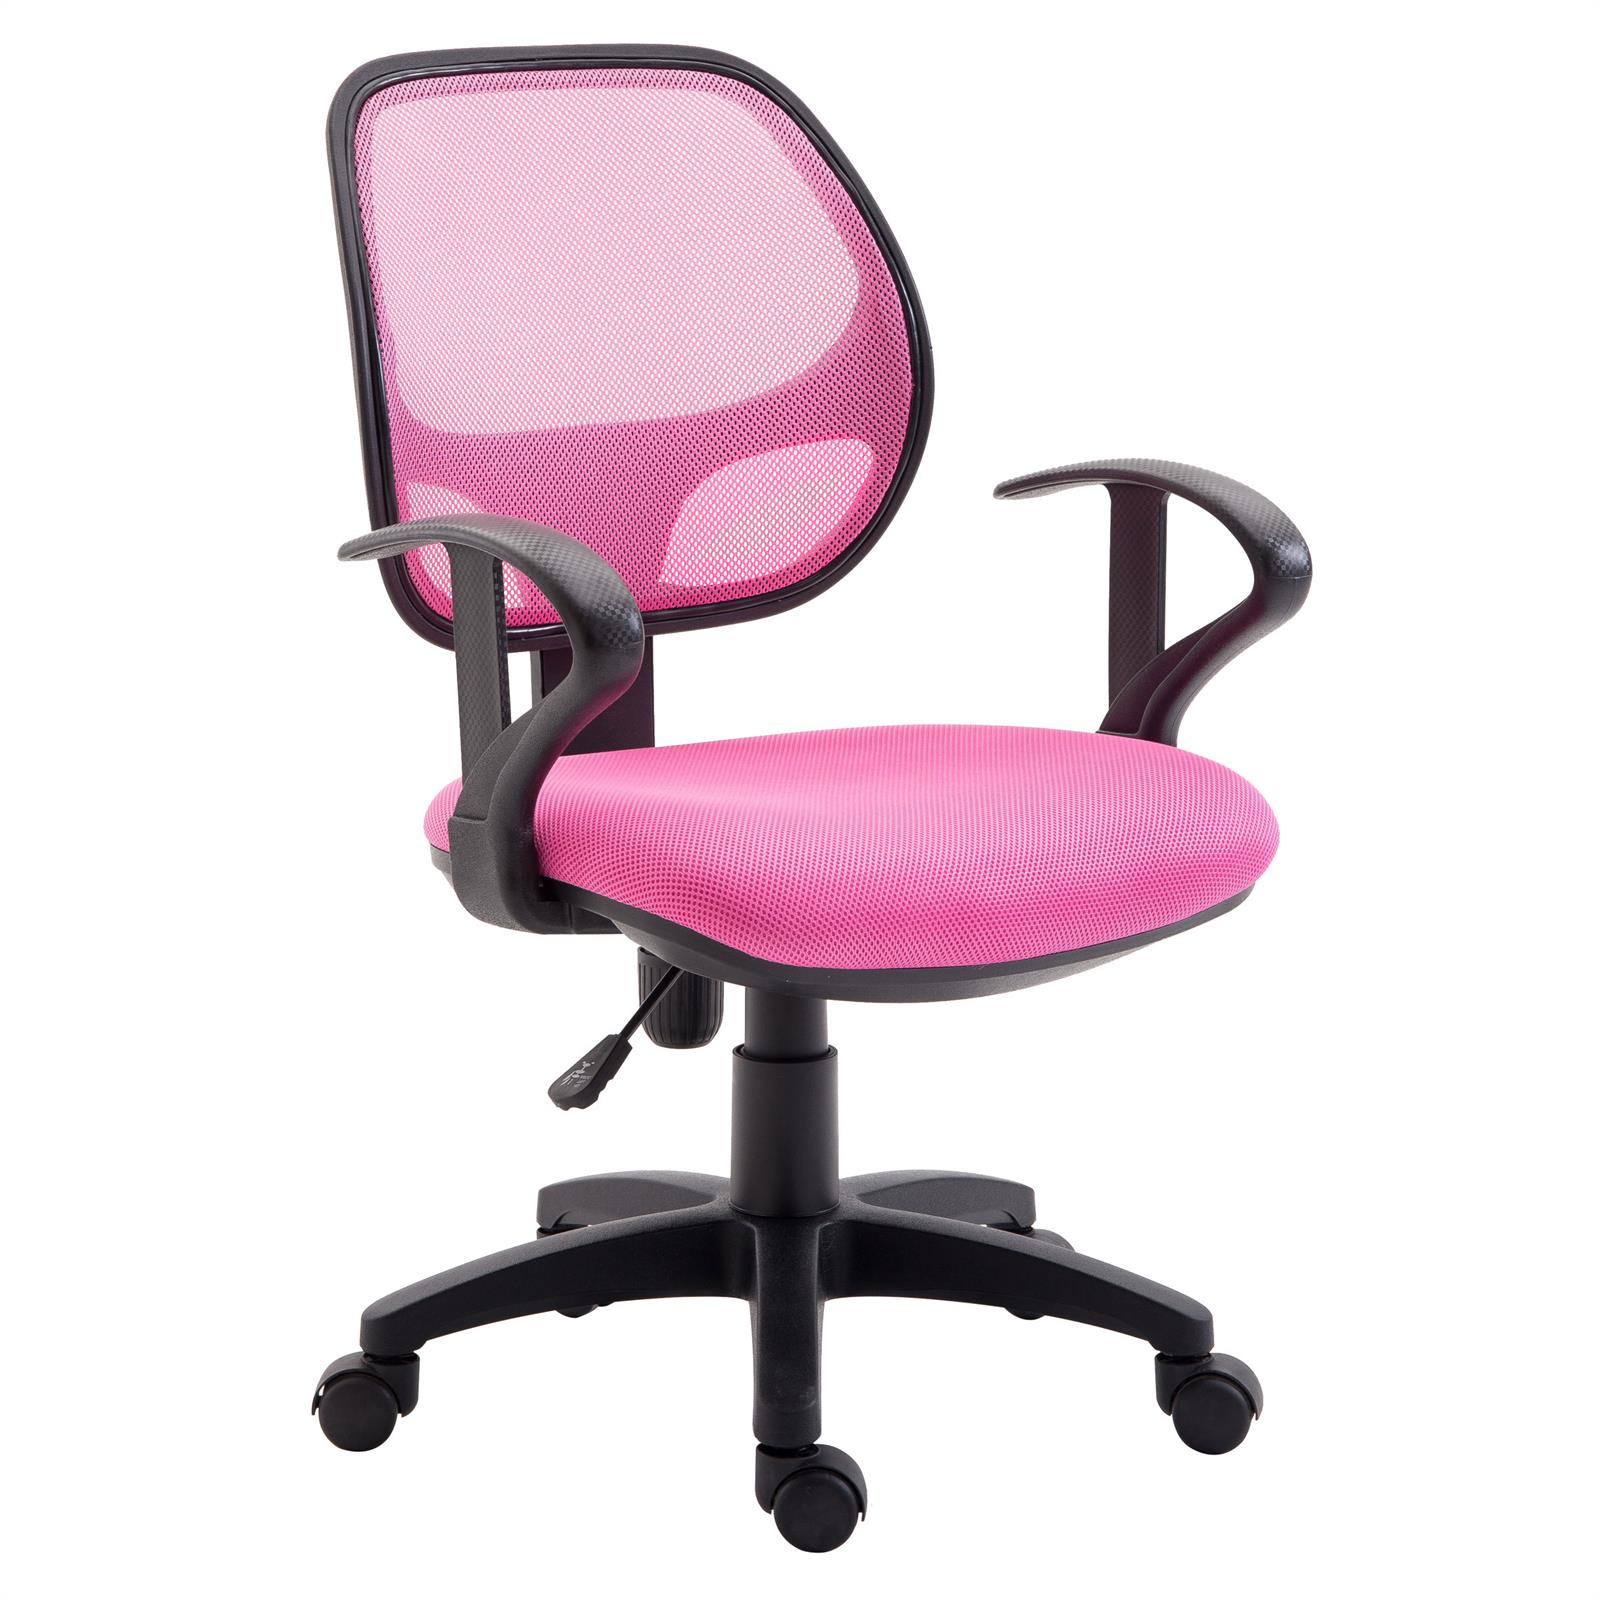 chaise de bureau pour enfant cool pink mobil meubles. Black Bedroom Furniture Sets. Home Design Ideas